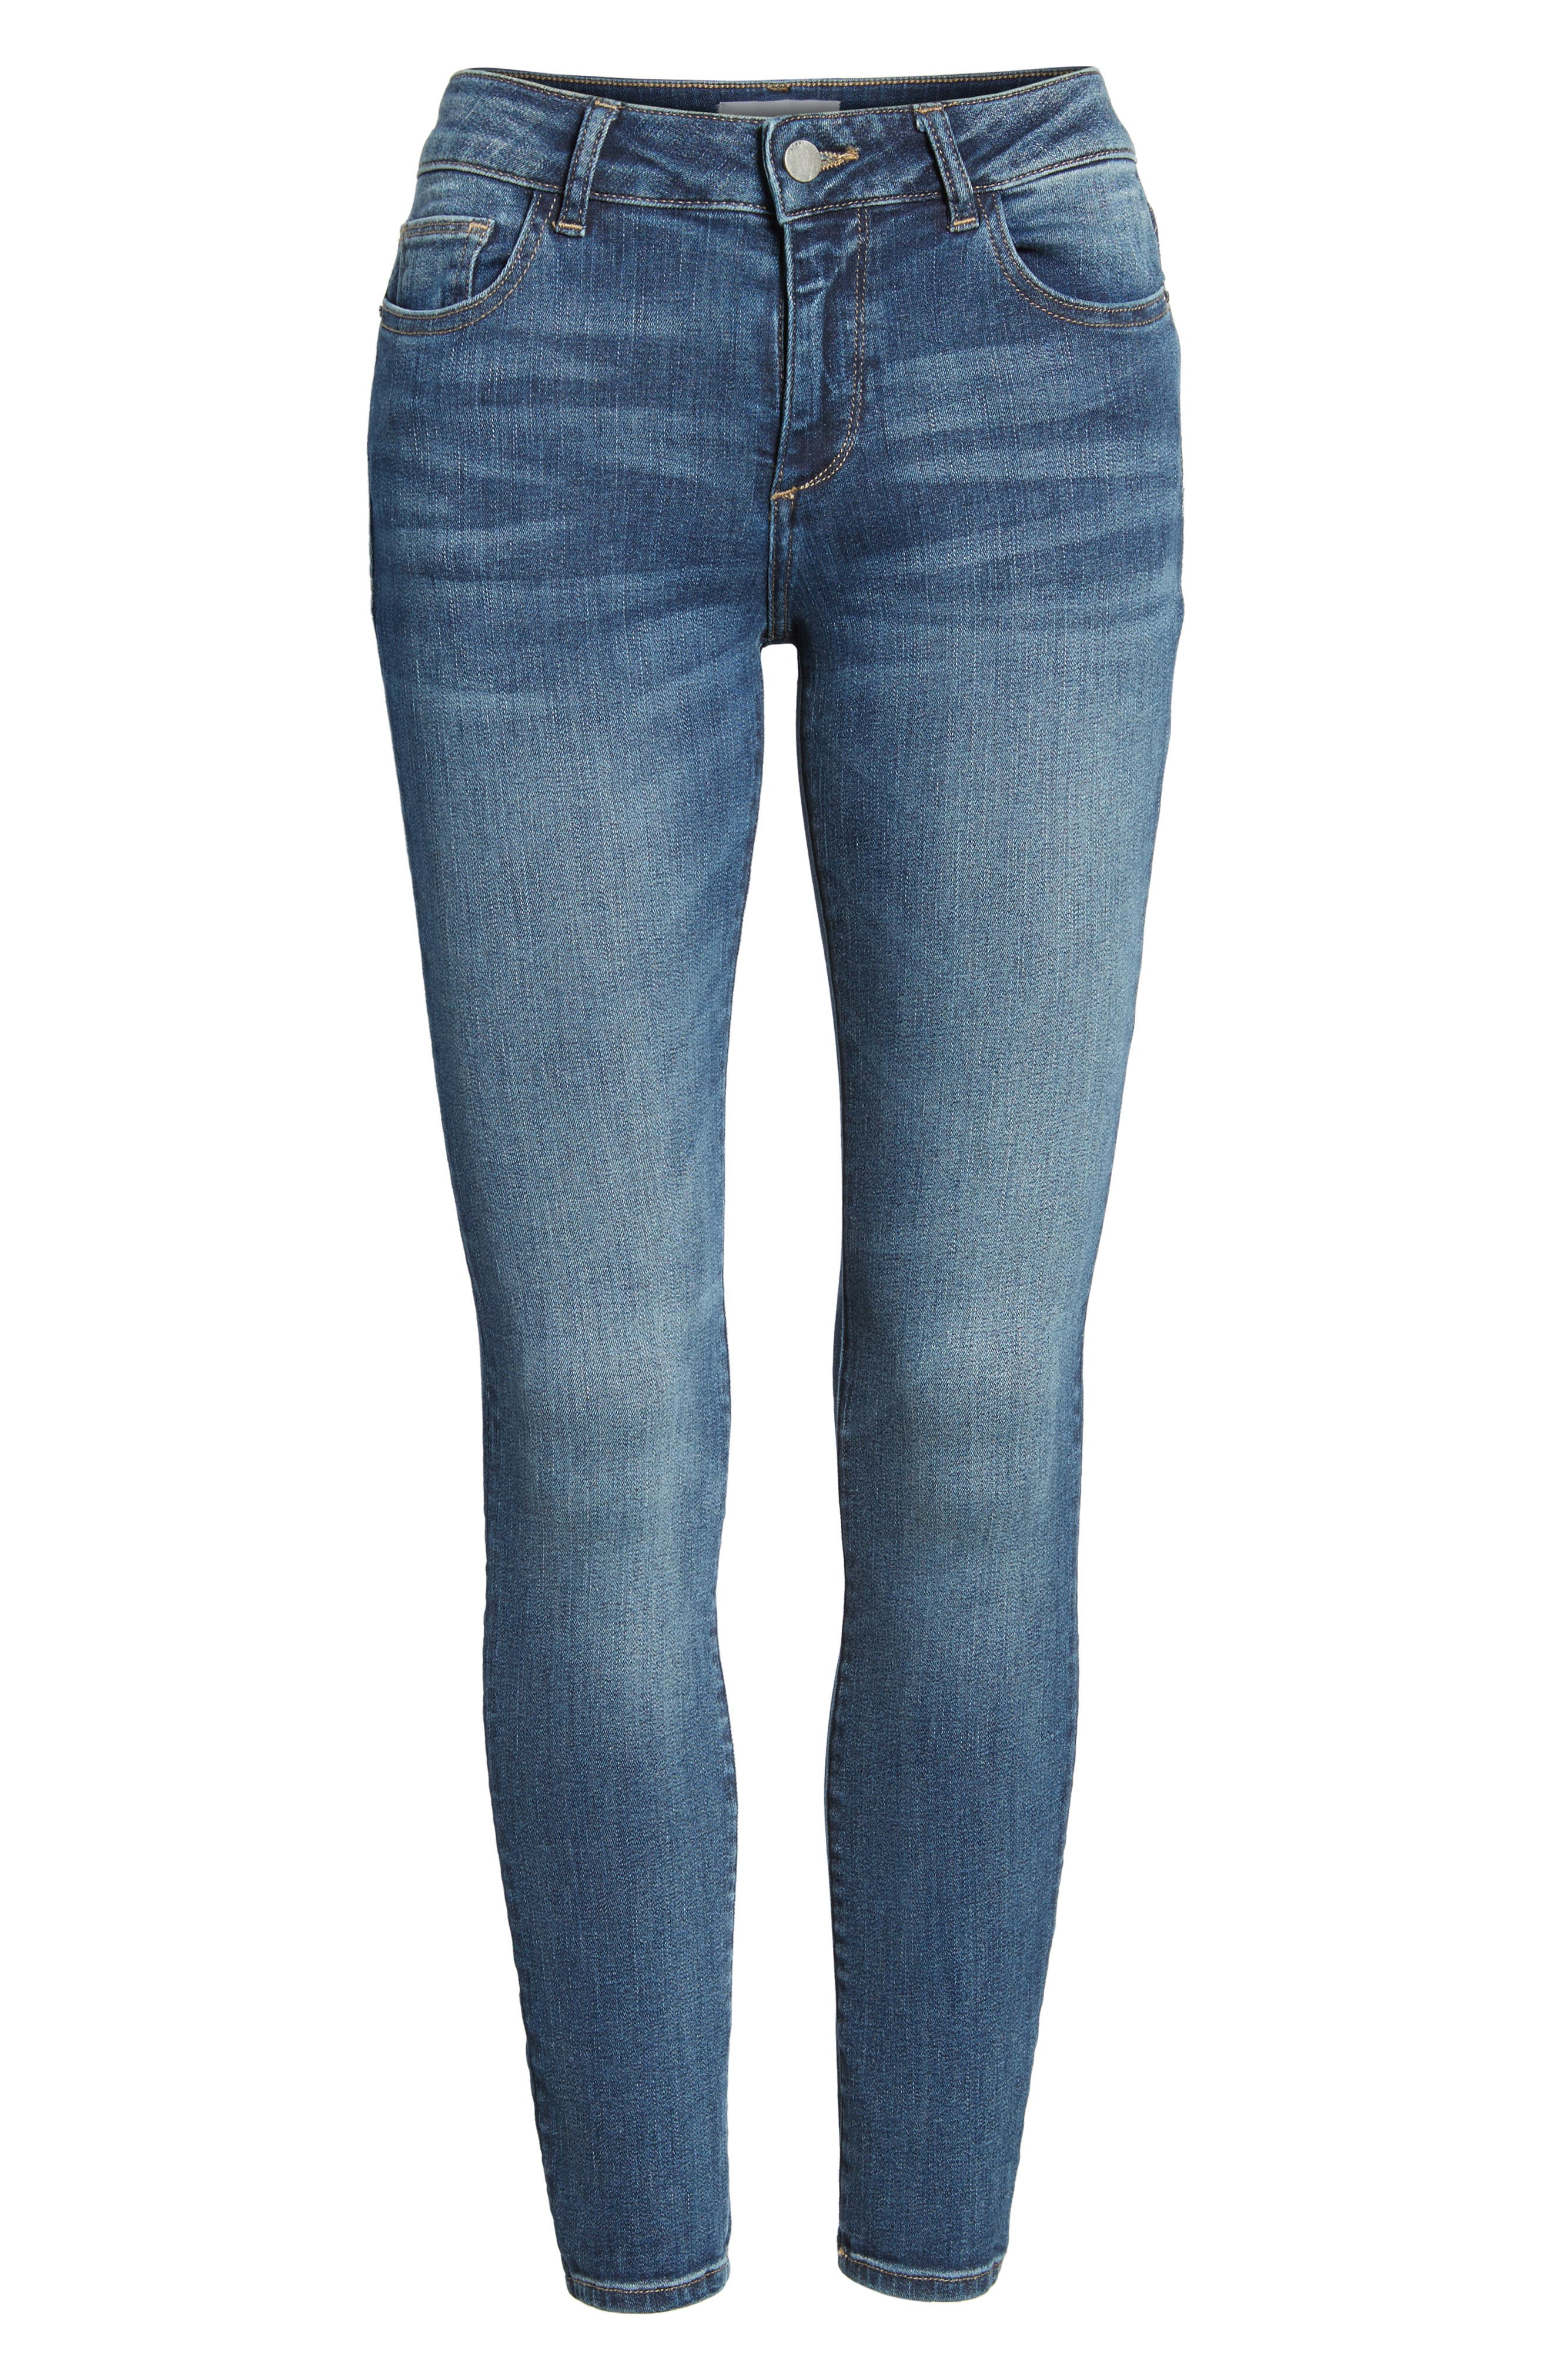 Margaux Instasculpt Ankle Skinny Jeans,                             Alternate thumbnail 7, color,                             Paramount